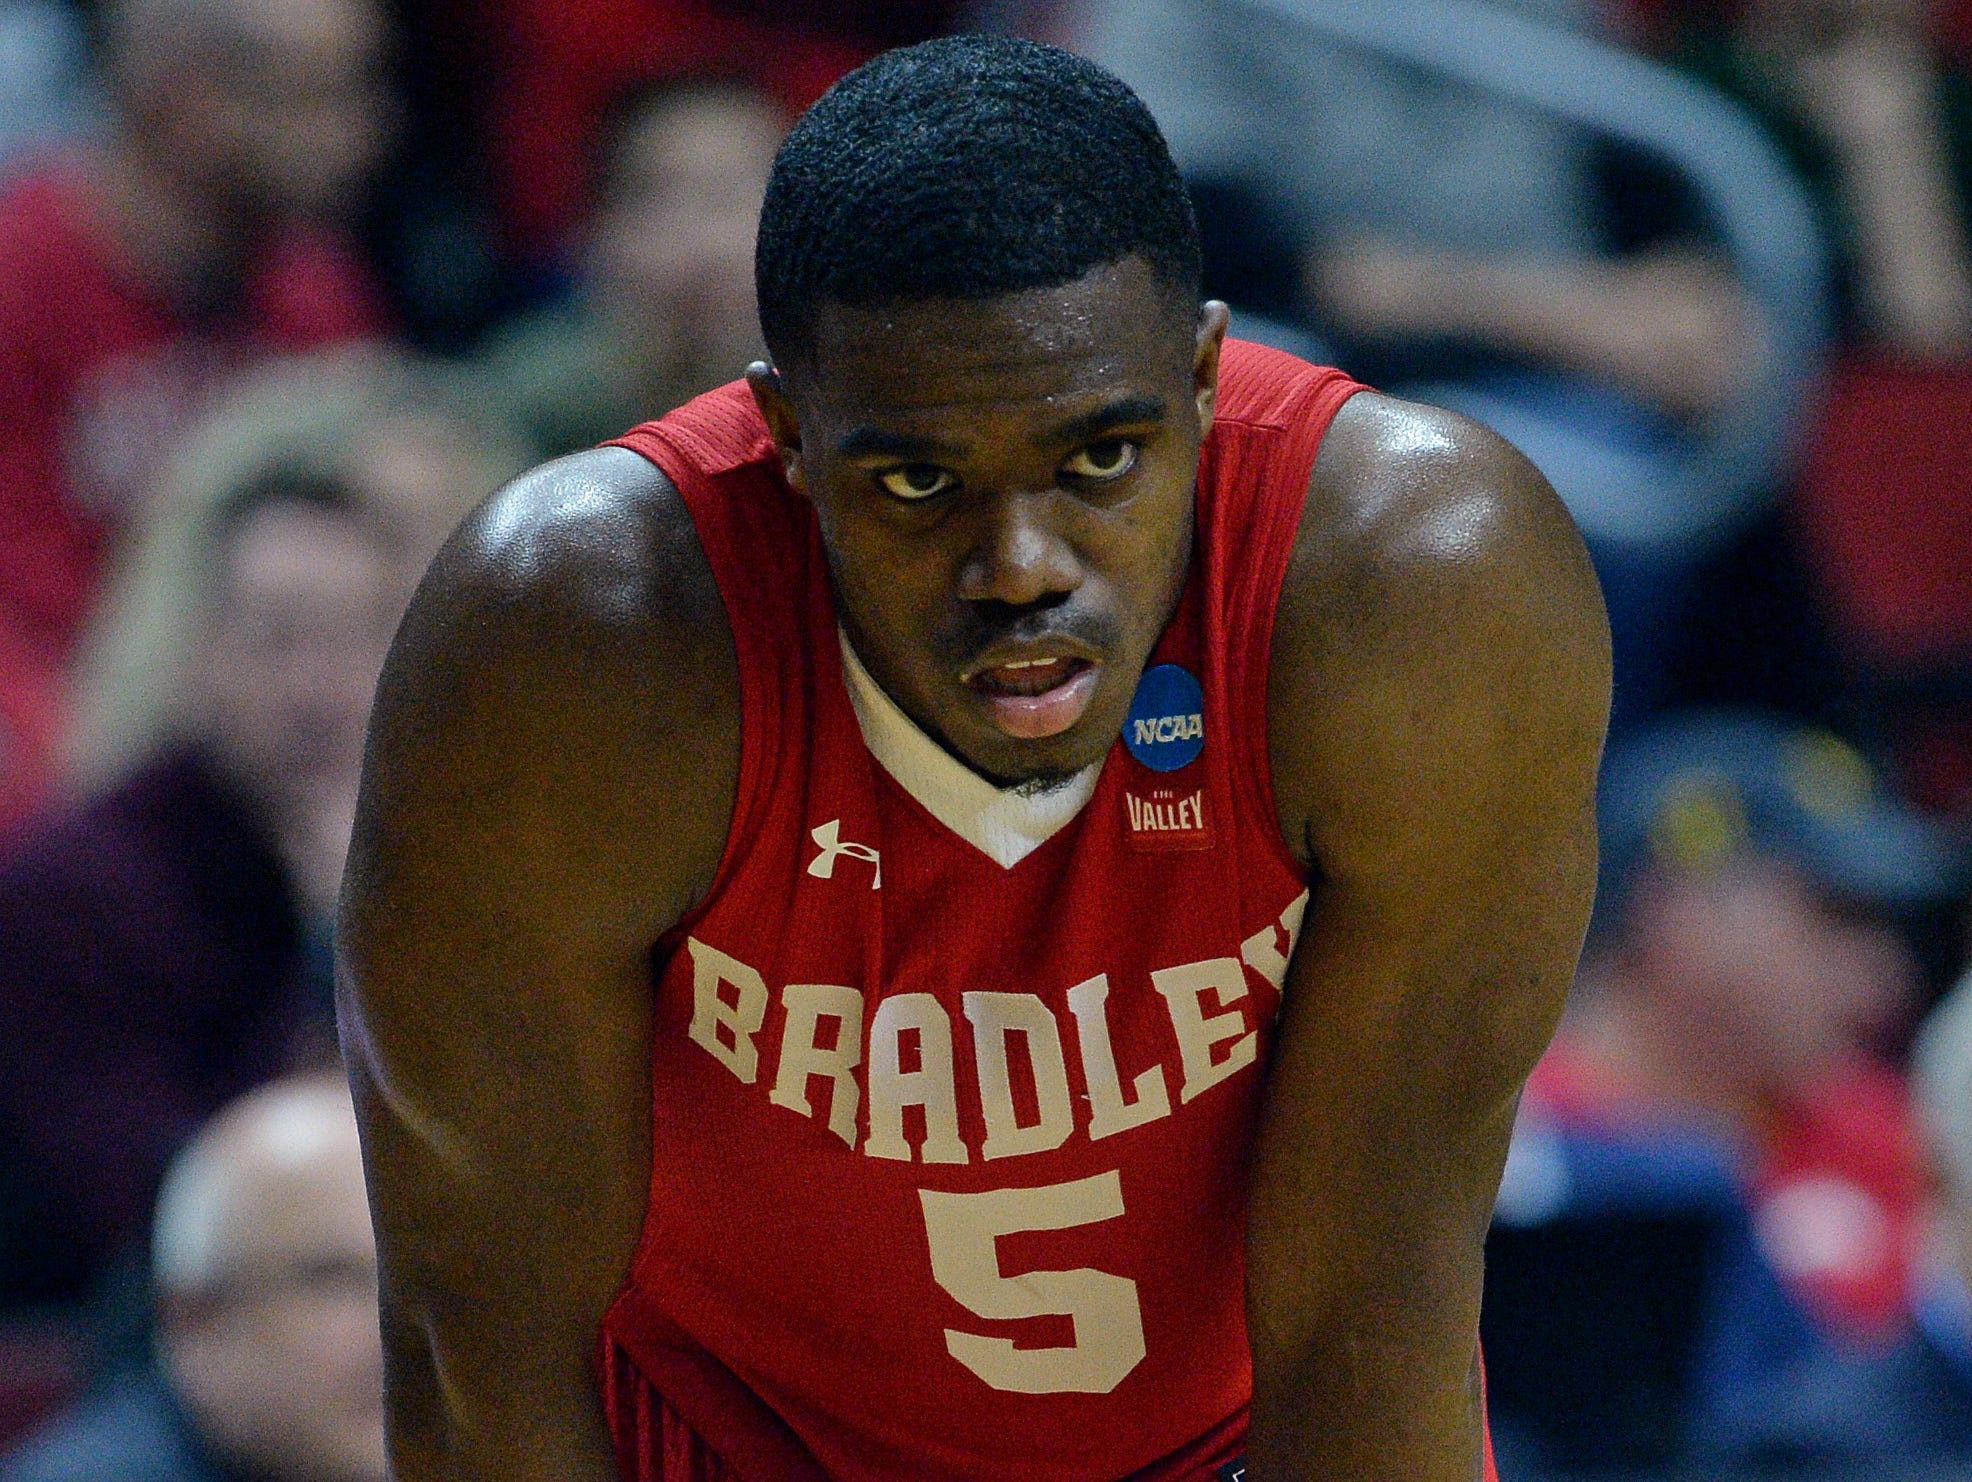 Mar 21, 2019; Des Moines, IA, United States; Bradley Braves guard Darrell Brown (5) reacts during the second half against the Michigan State Spartans in the first round of the 2019 NCAA Tournament at Wells Fargo Arena. Mandatory Credit: Steven Branscombe-USA TODAY Sports